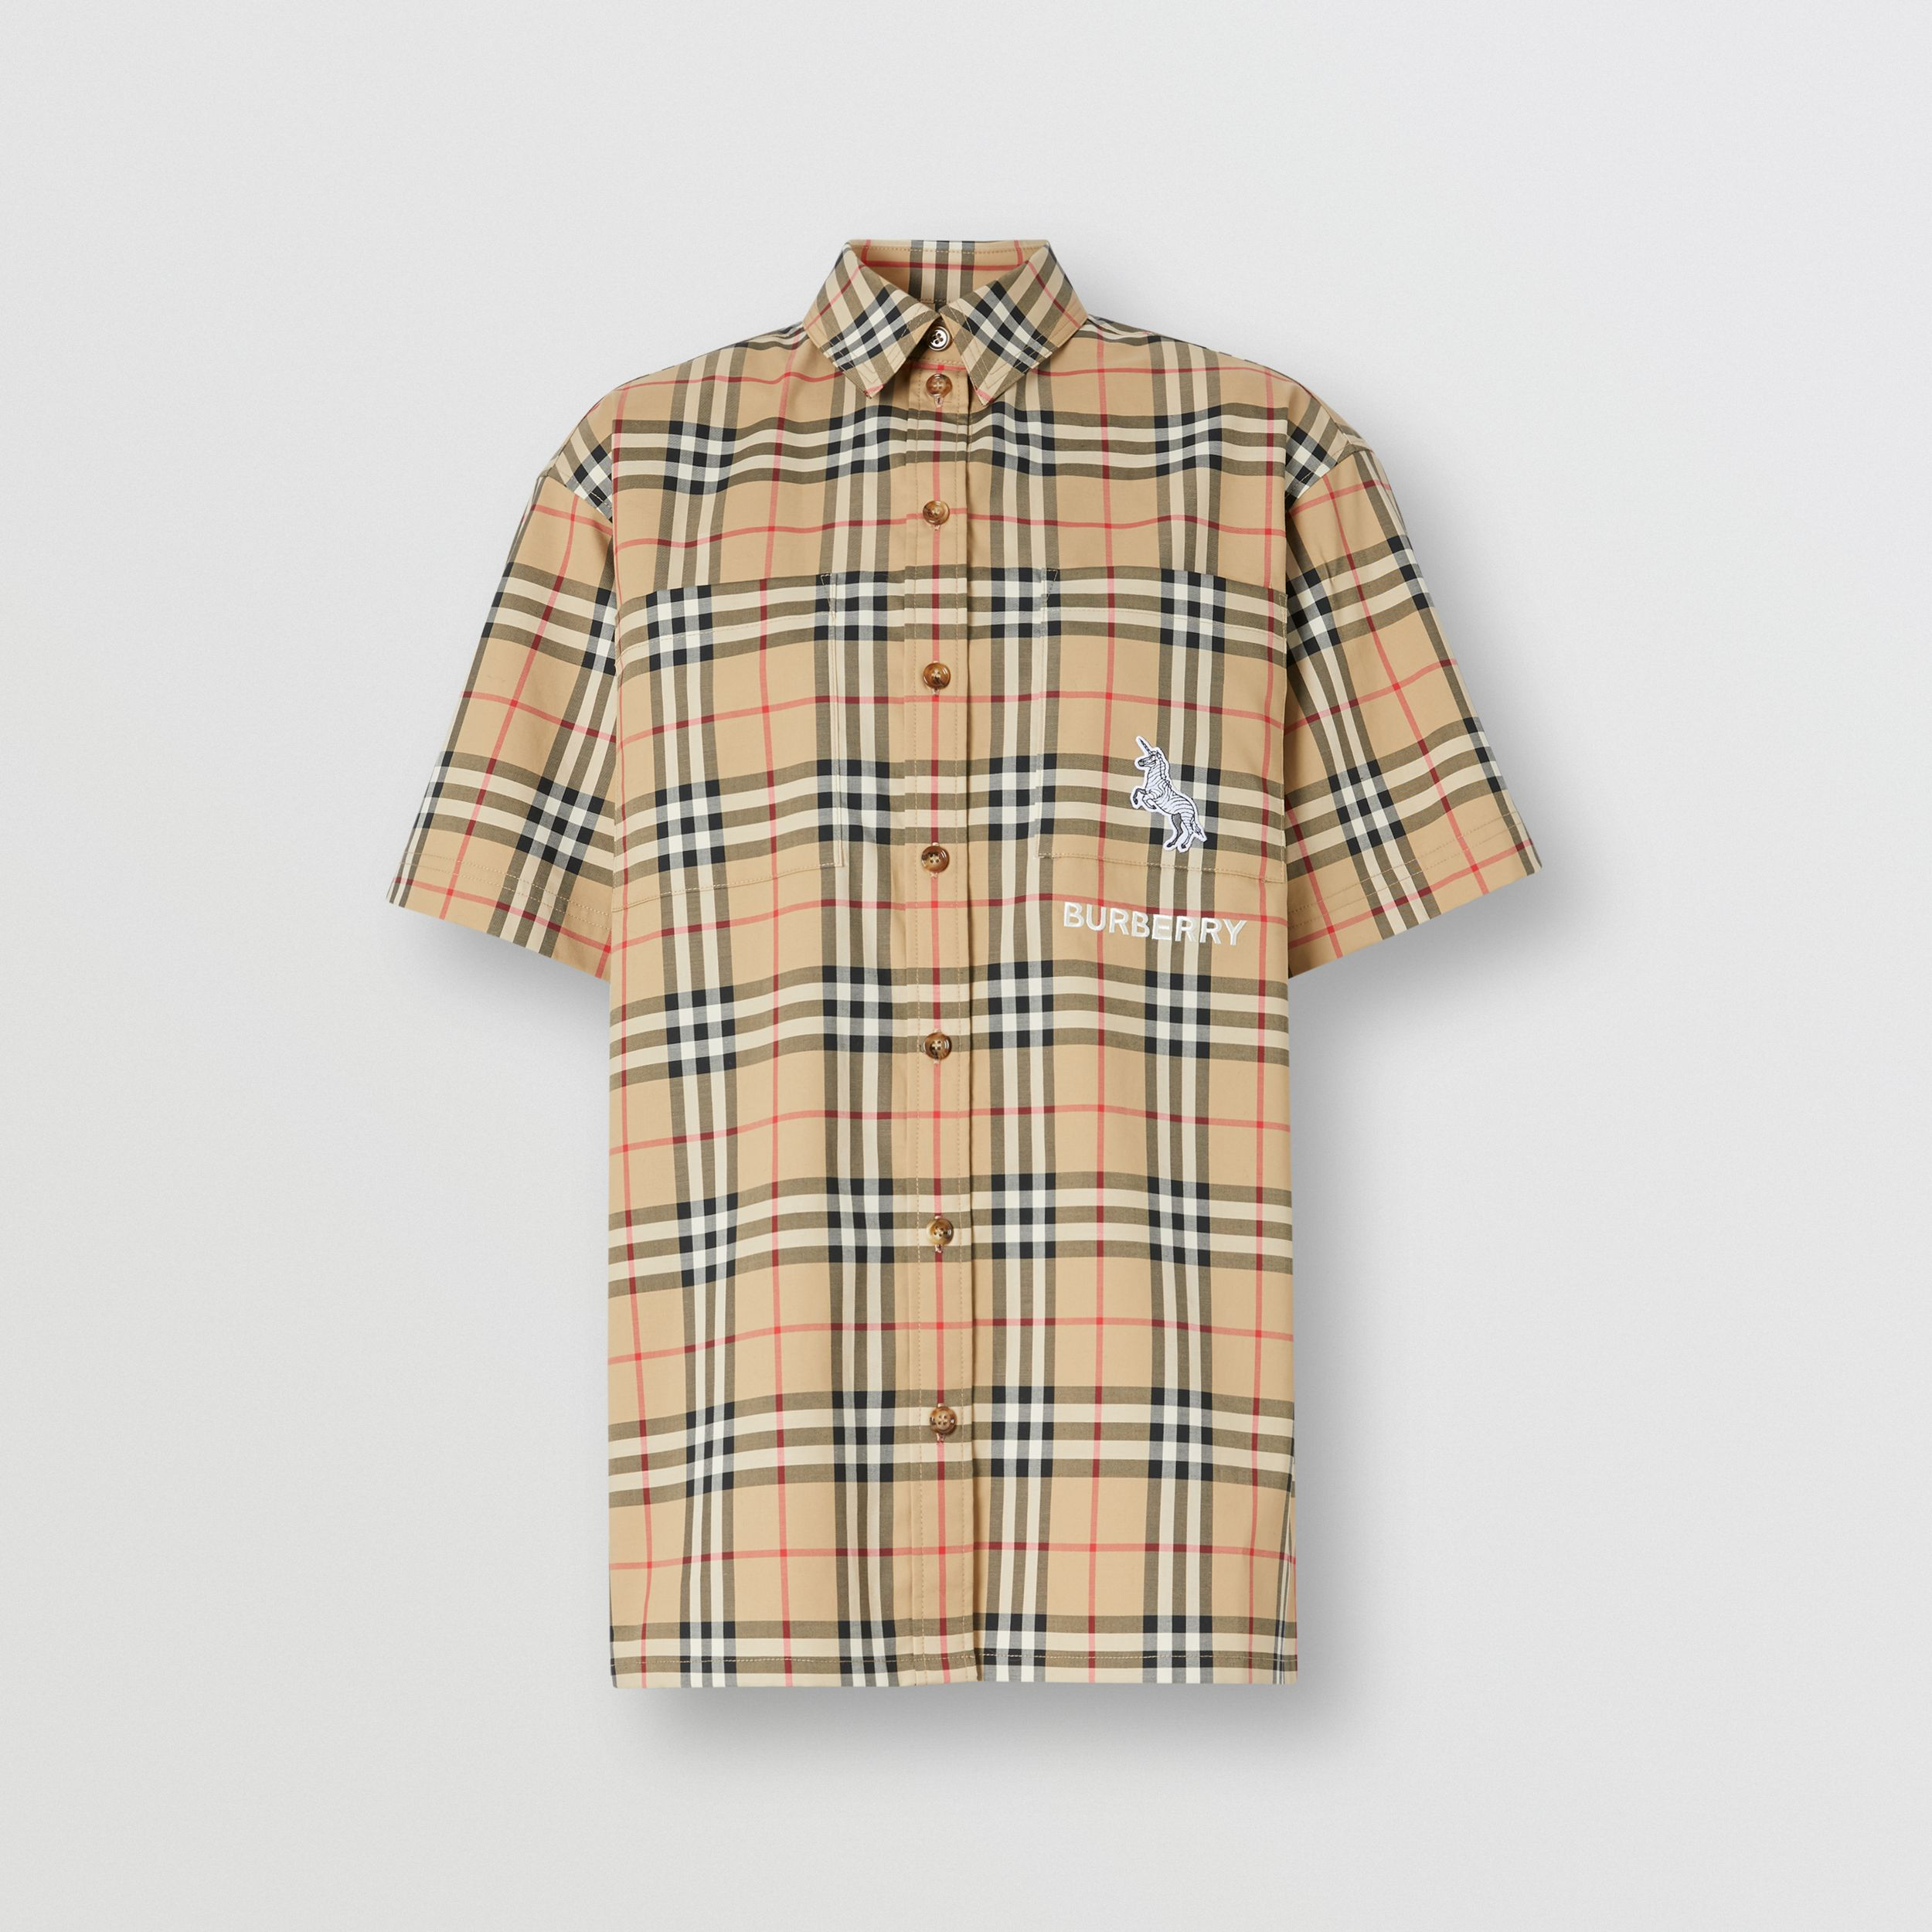 Zebra Appliqué Vintage Check Cotton Twill Shirt - Women | Burberry - 4